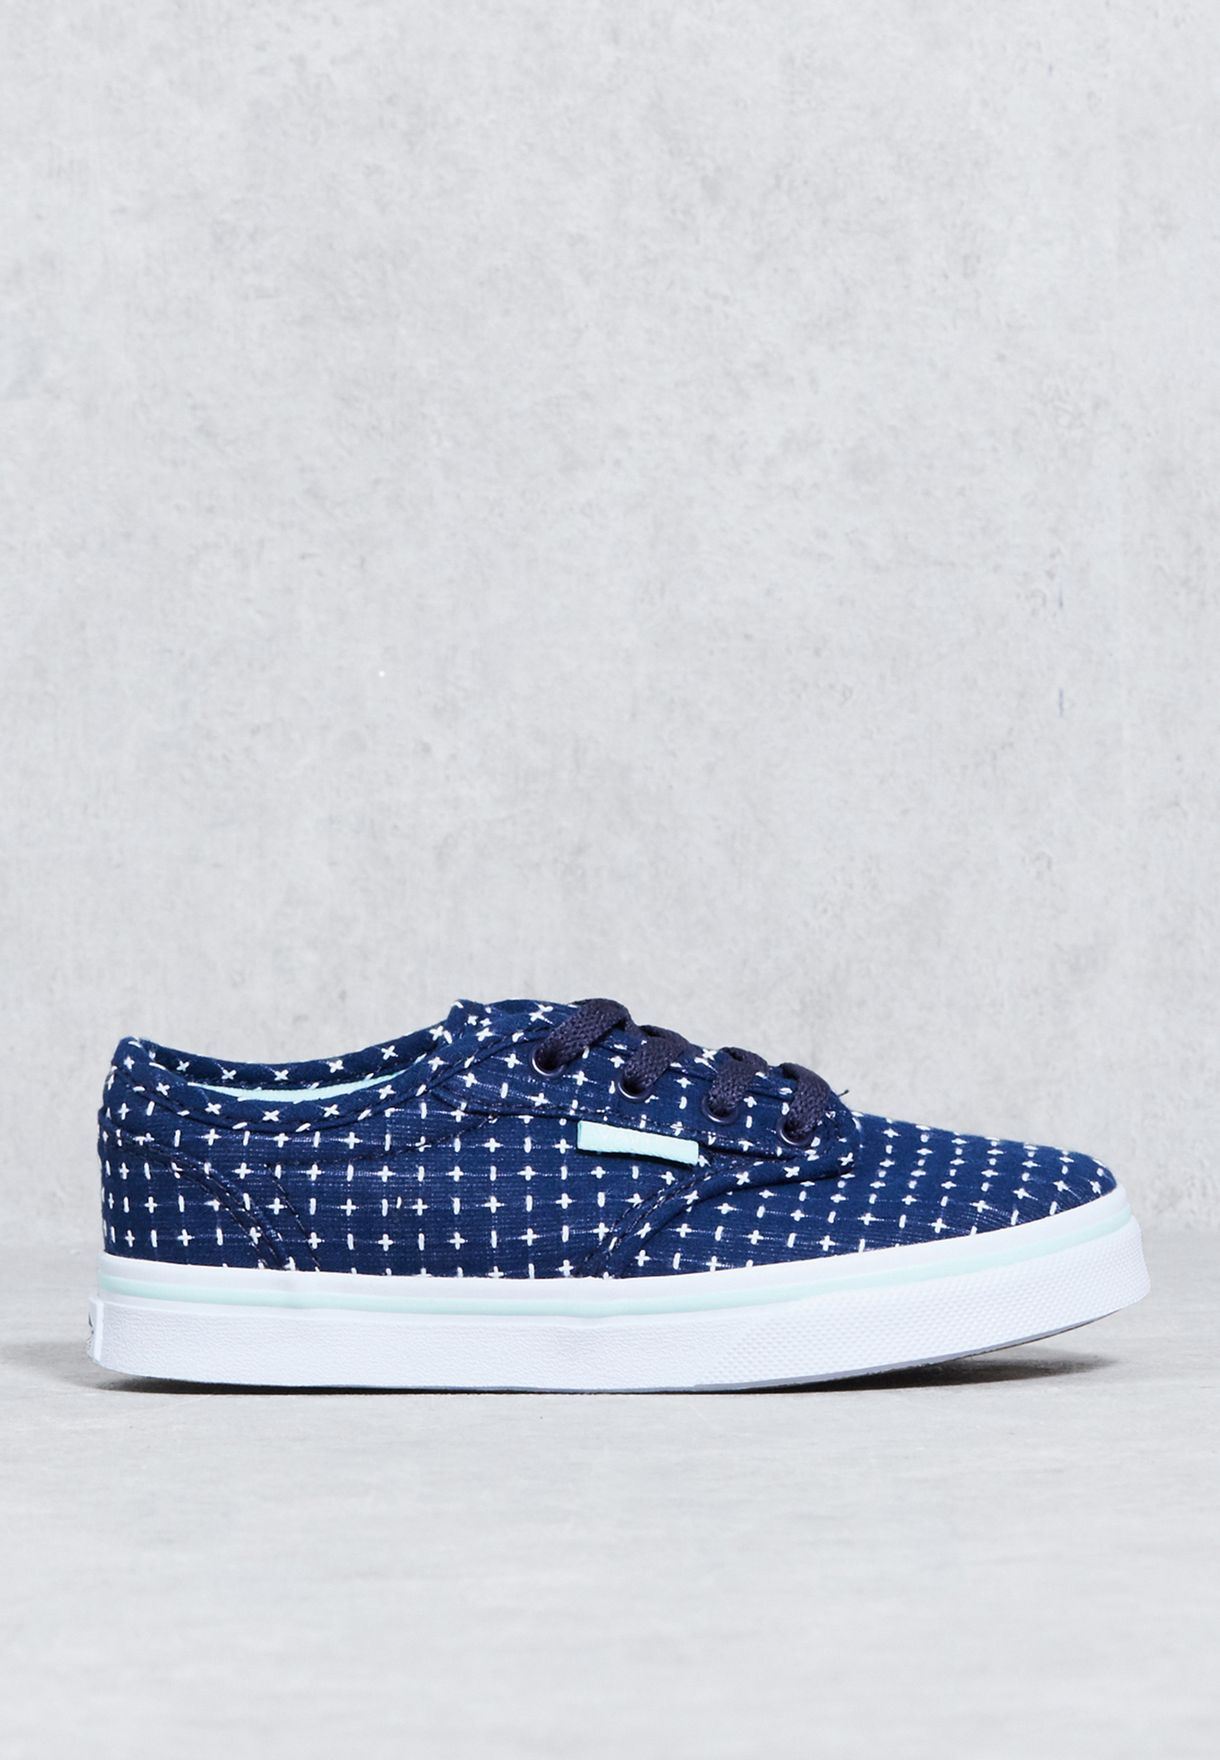 2f958d8508e810 Shop Vans navy Atwood Low Sneakers Kids 4ABOSM for Kids in Qatar -  VA088SH63FFK